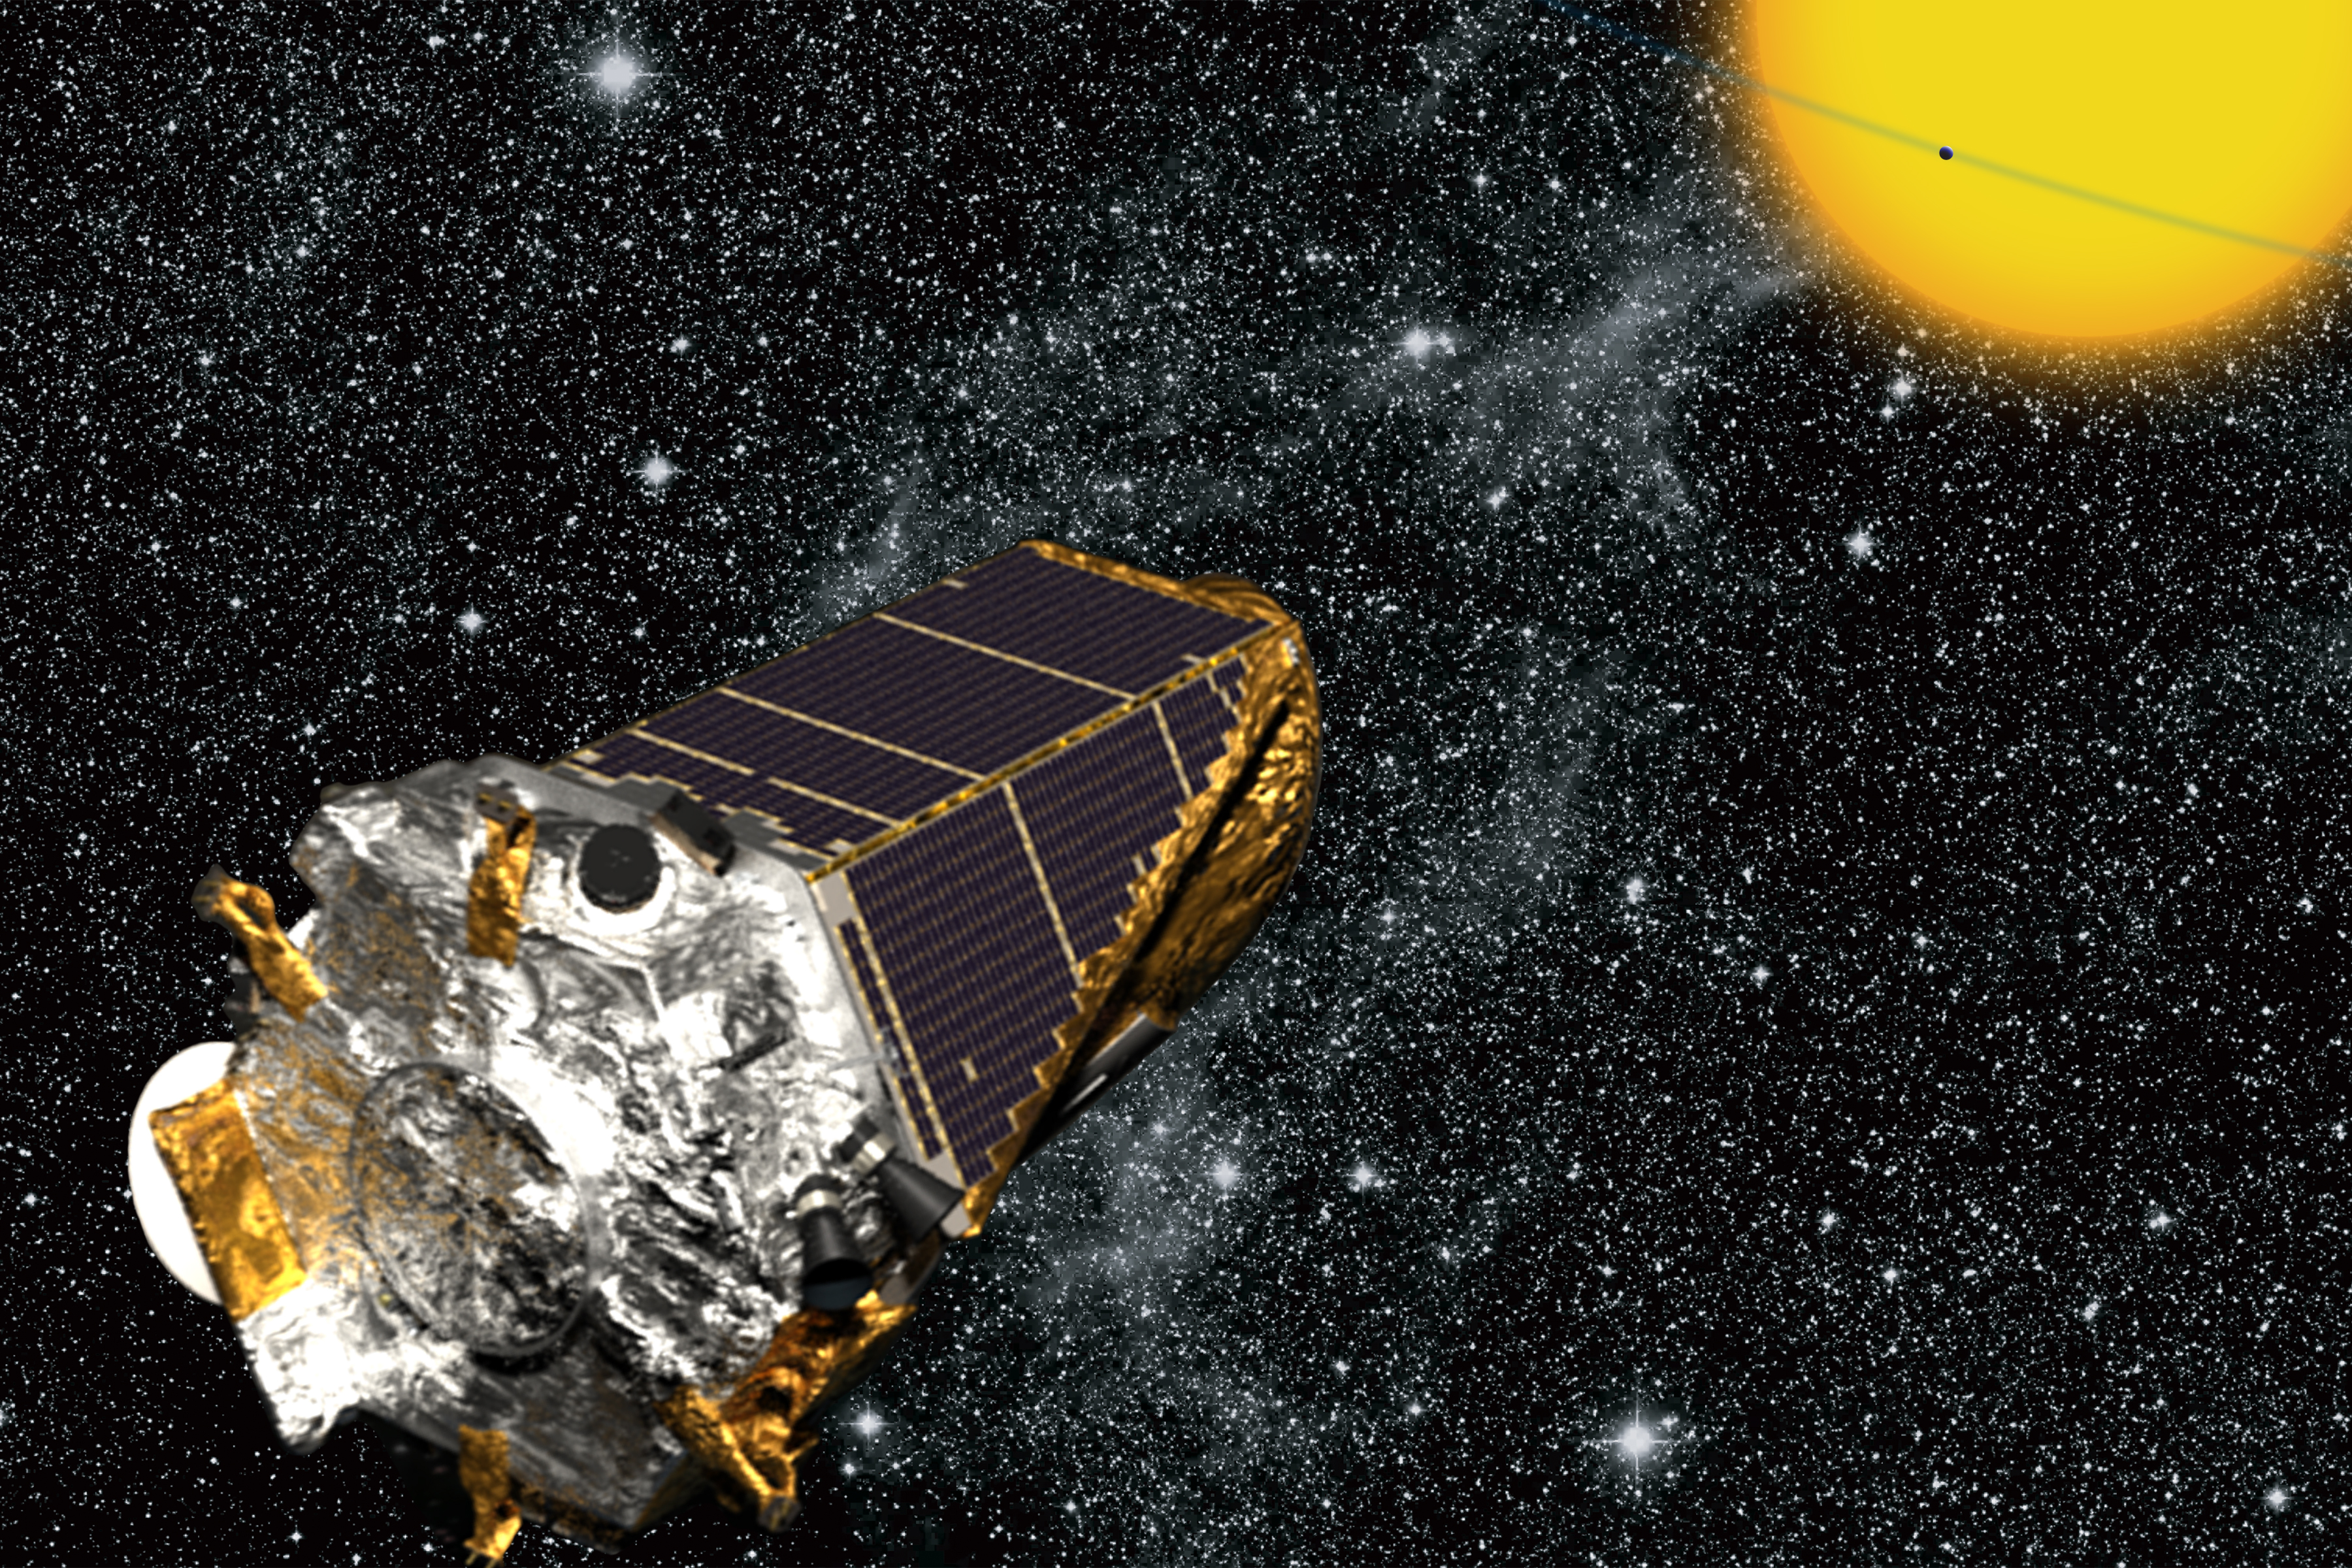 Tiny exoplanet smaller than Mercury: Smallest planet yet ...